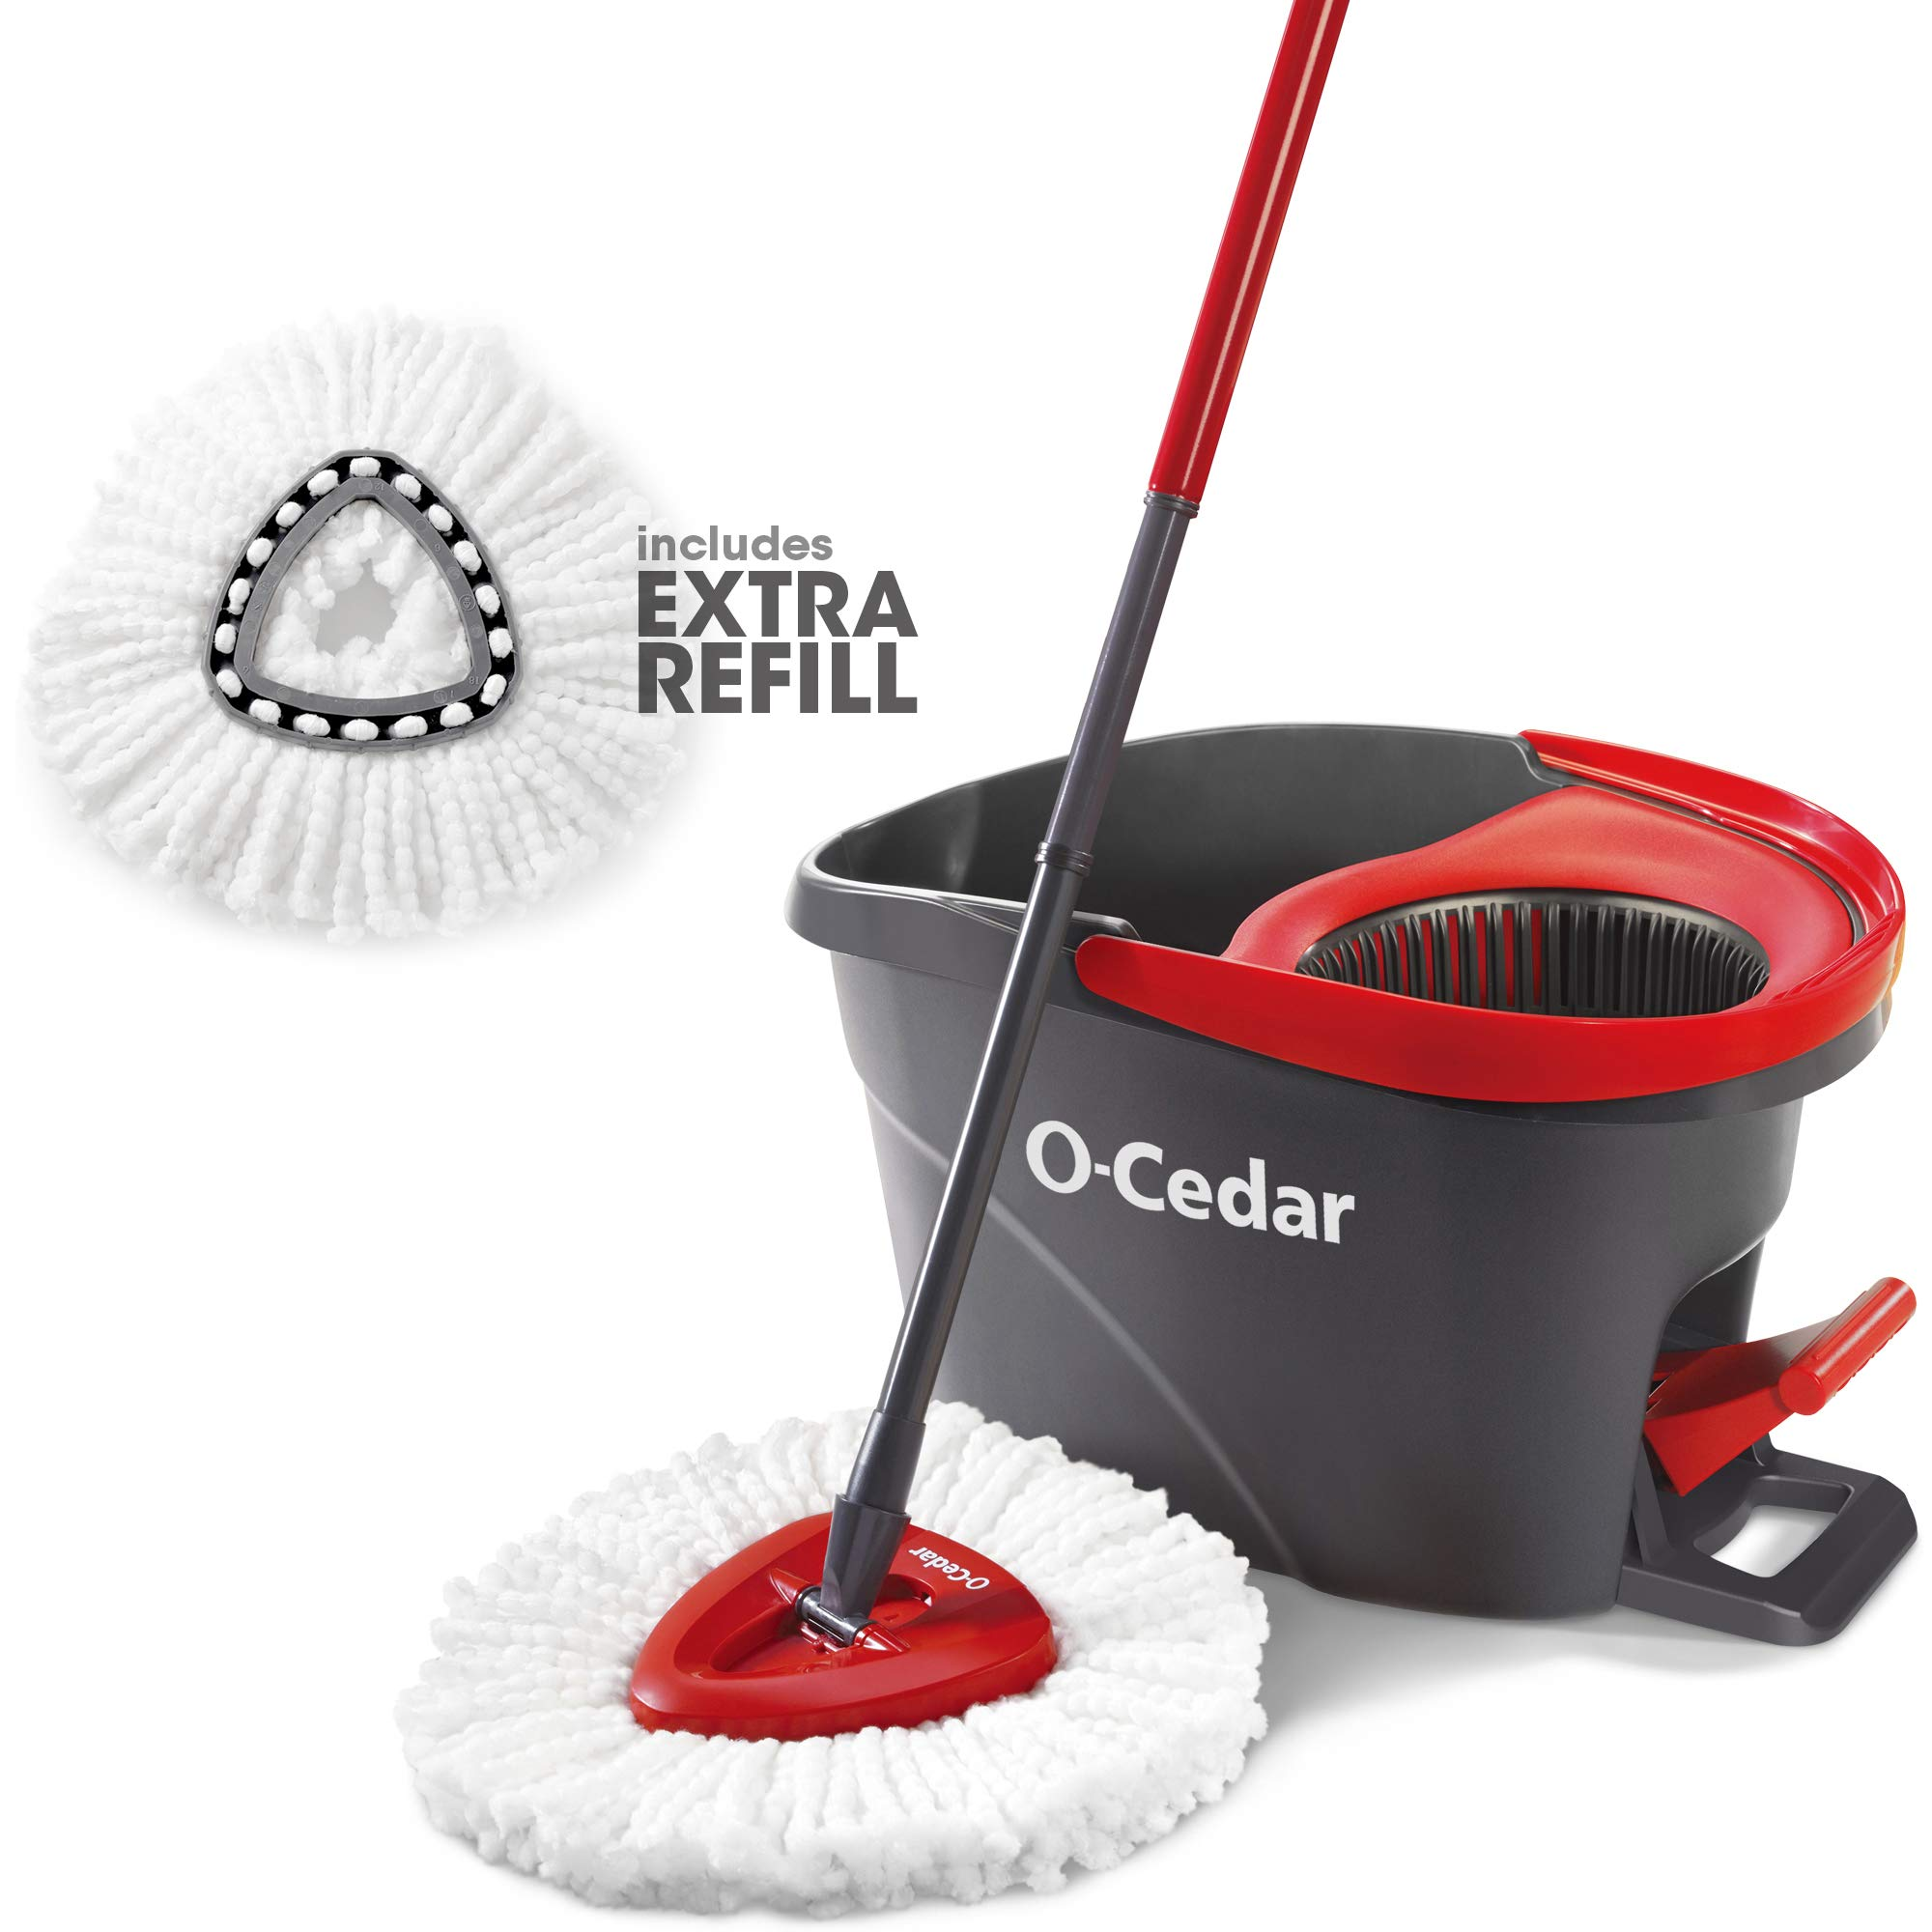 O-Cedar Easywring Microfiber Spin Mop & Bucket Floor Cleaning System with 1 Extra Refill by O-Cedar